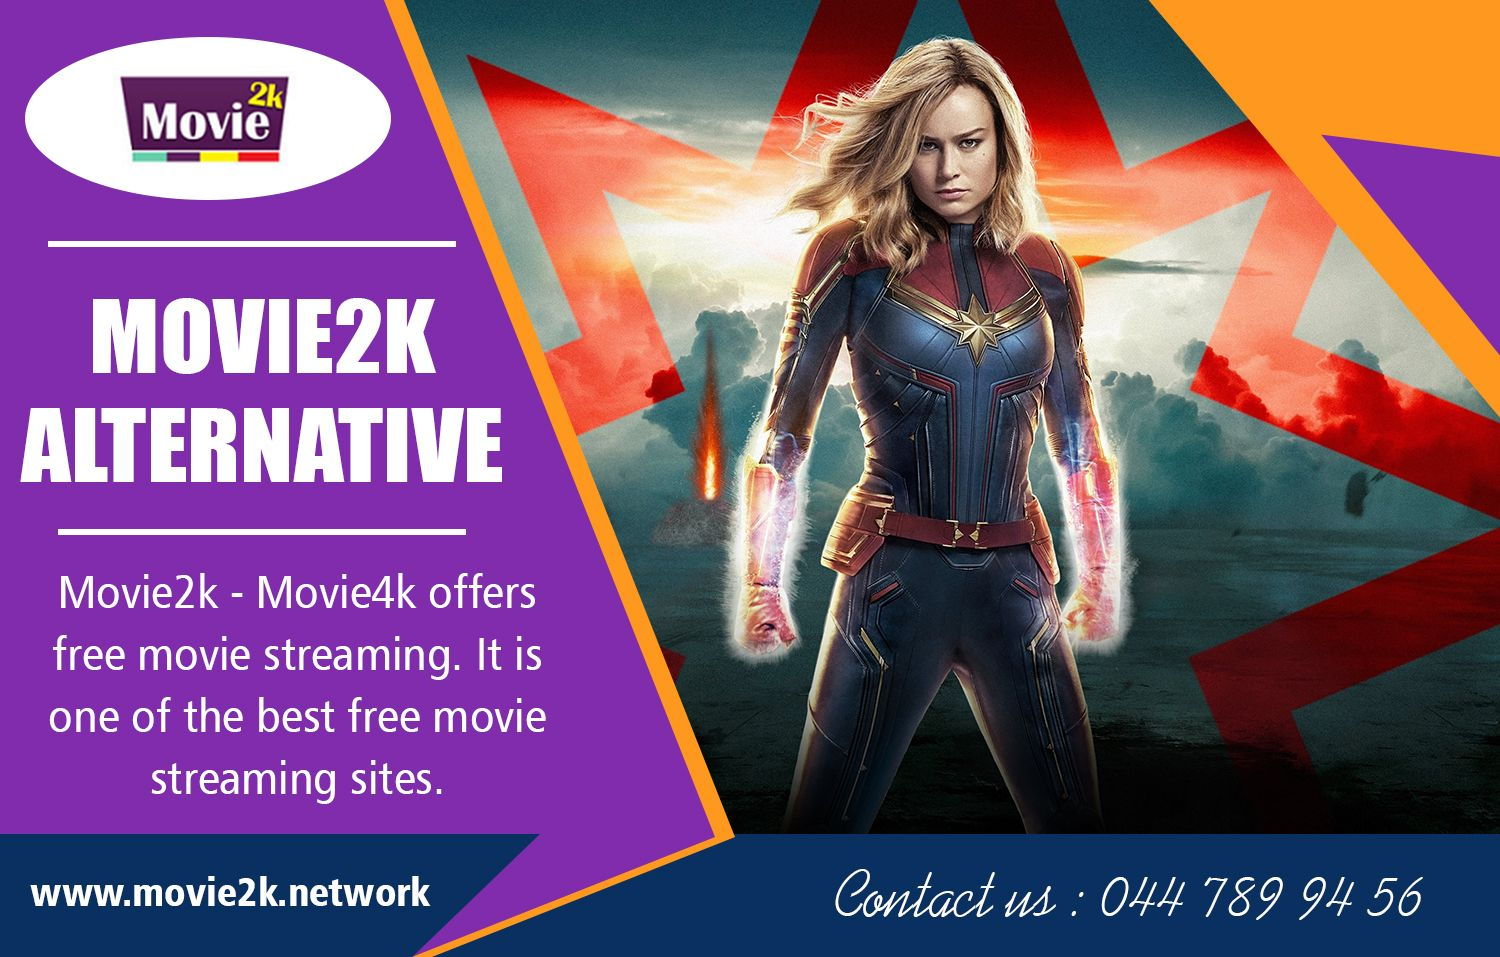 An impressive and easy to use free movie website that